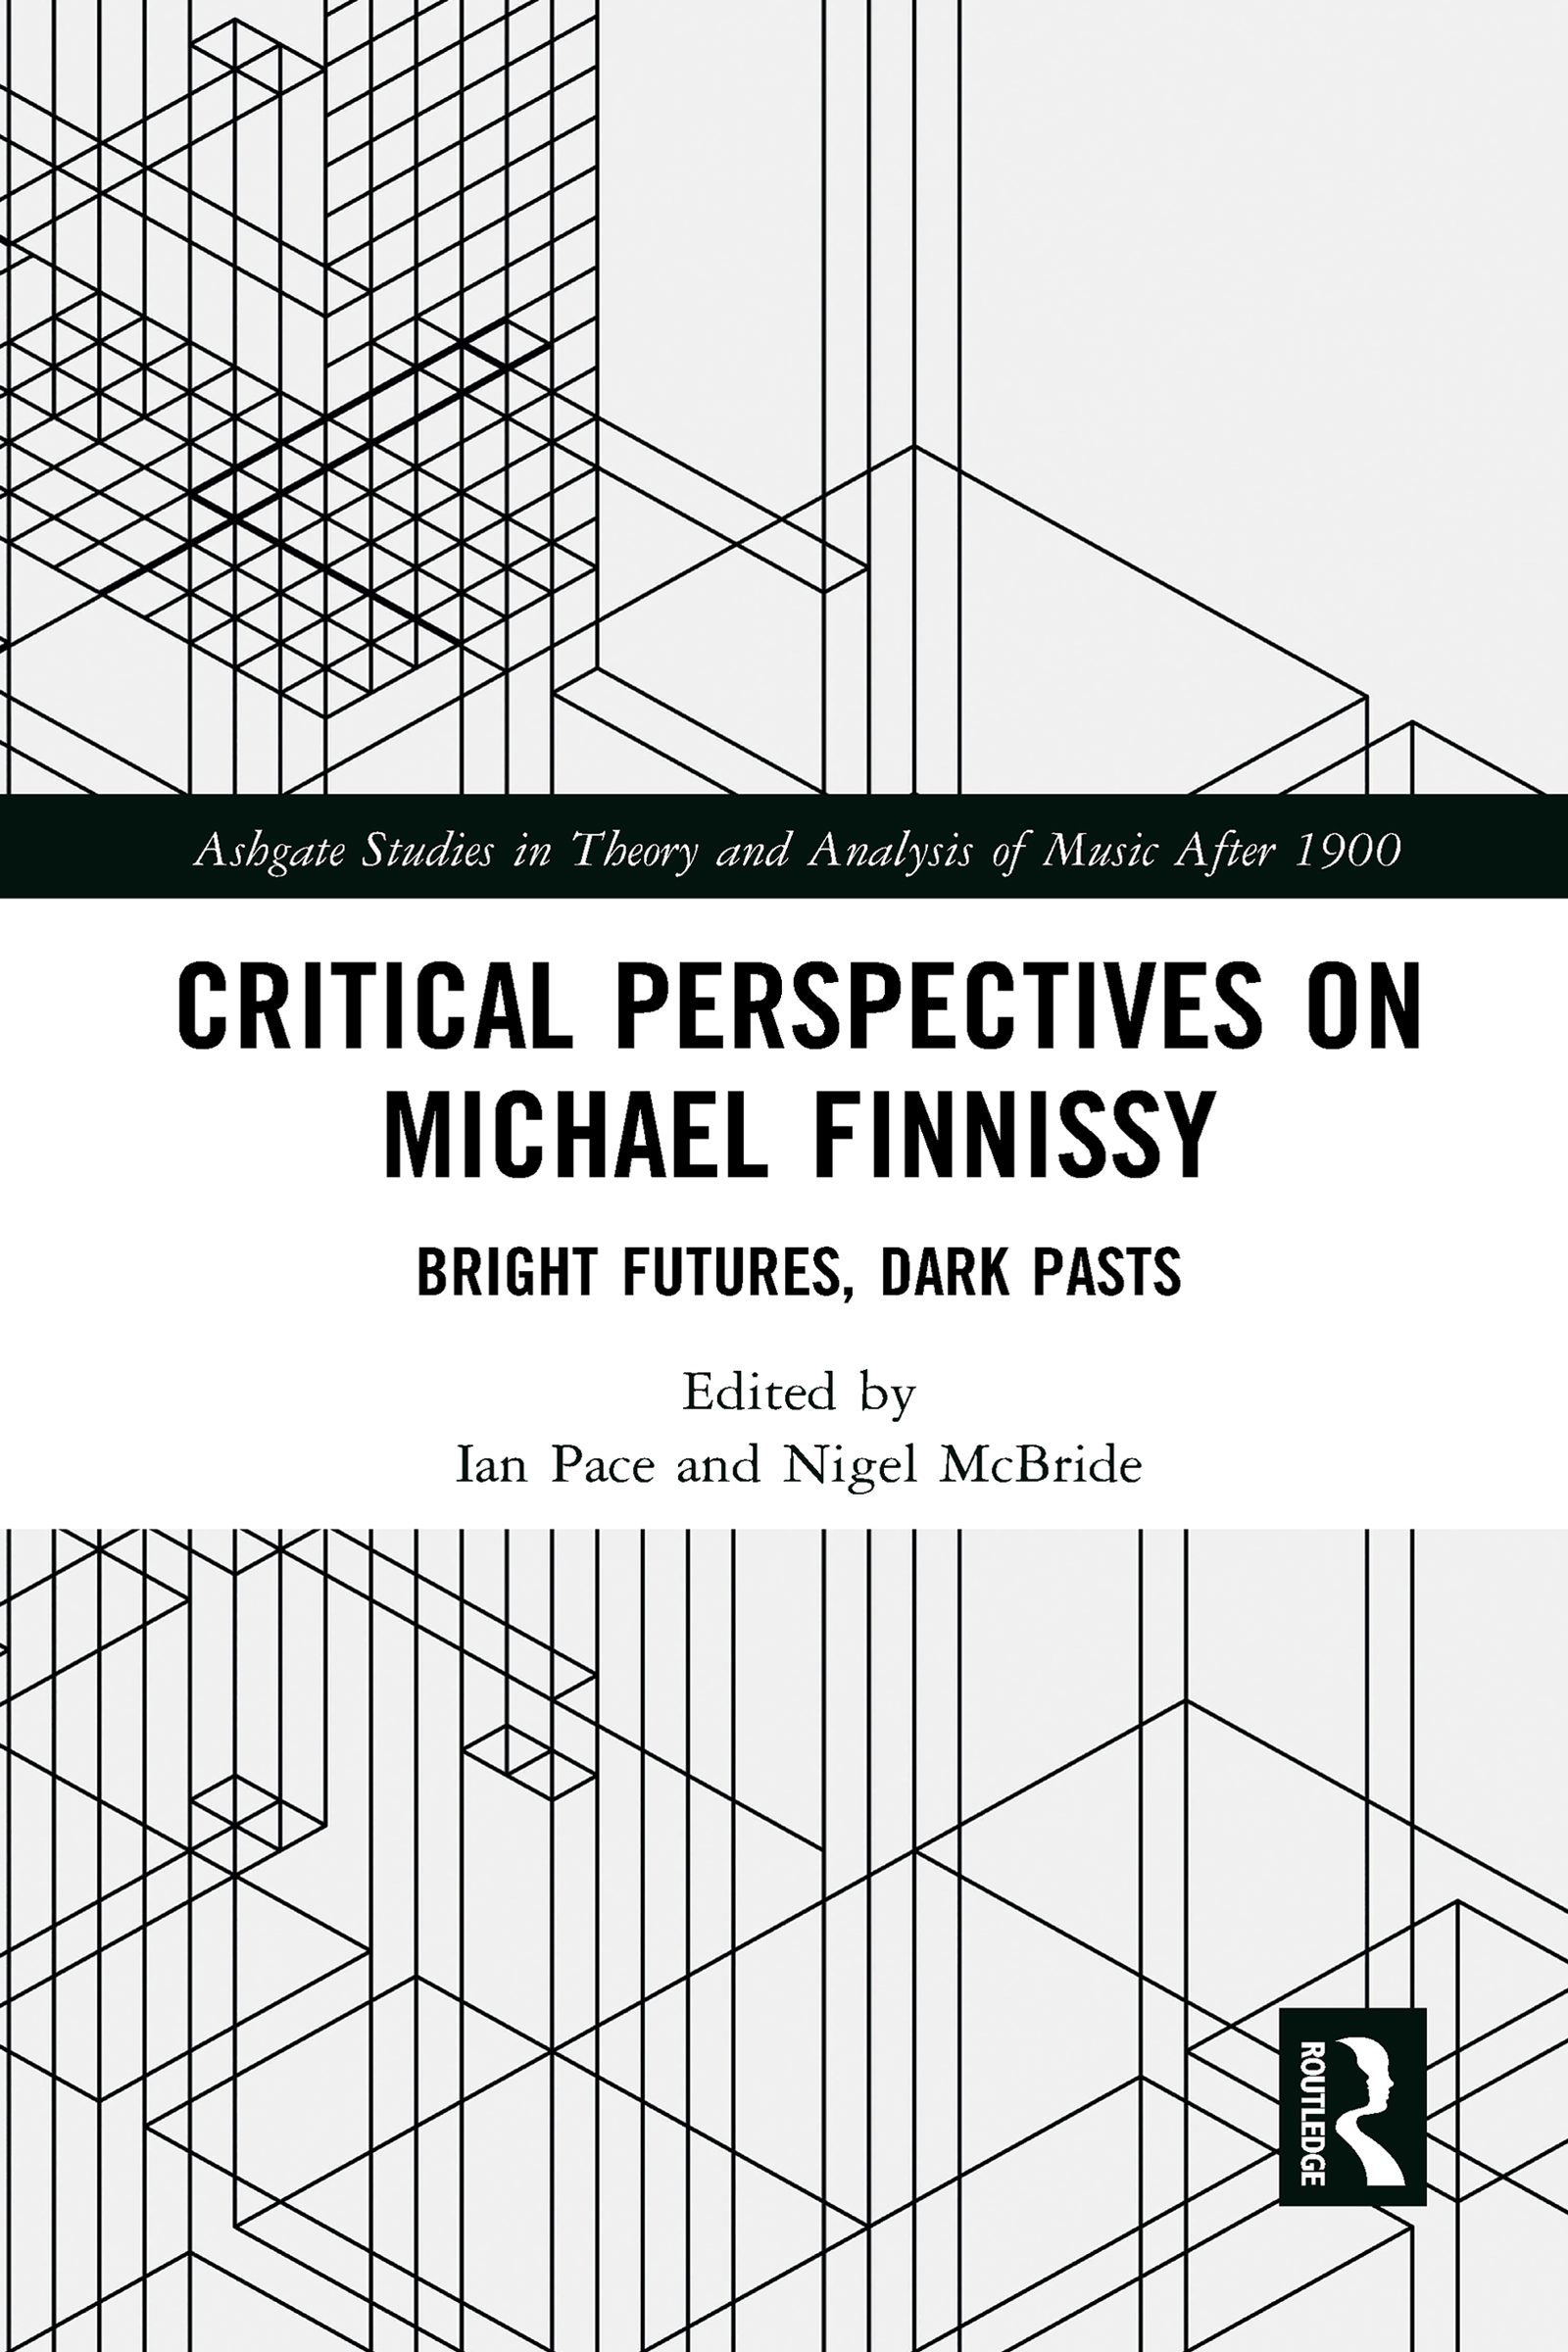 Finnissy and pantonality